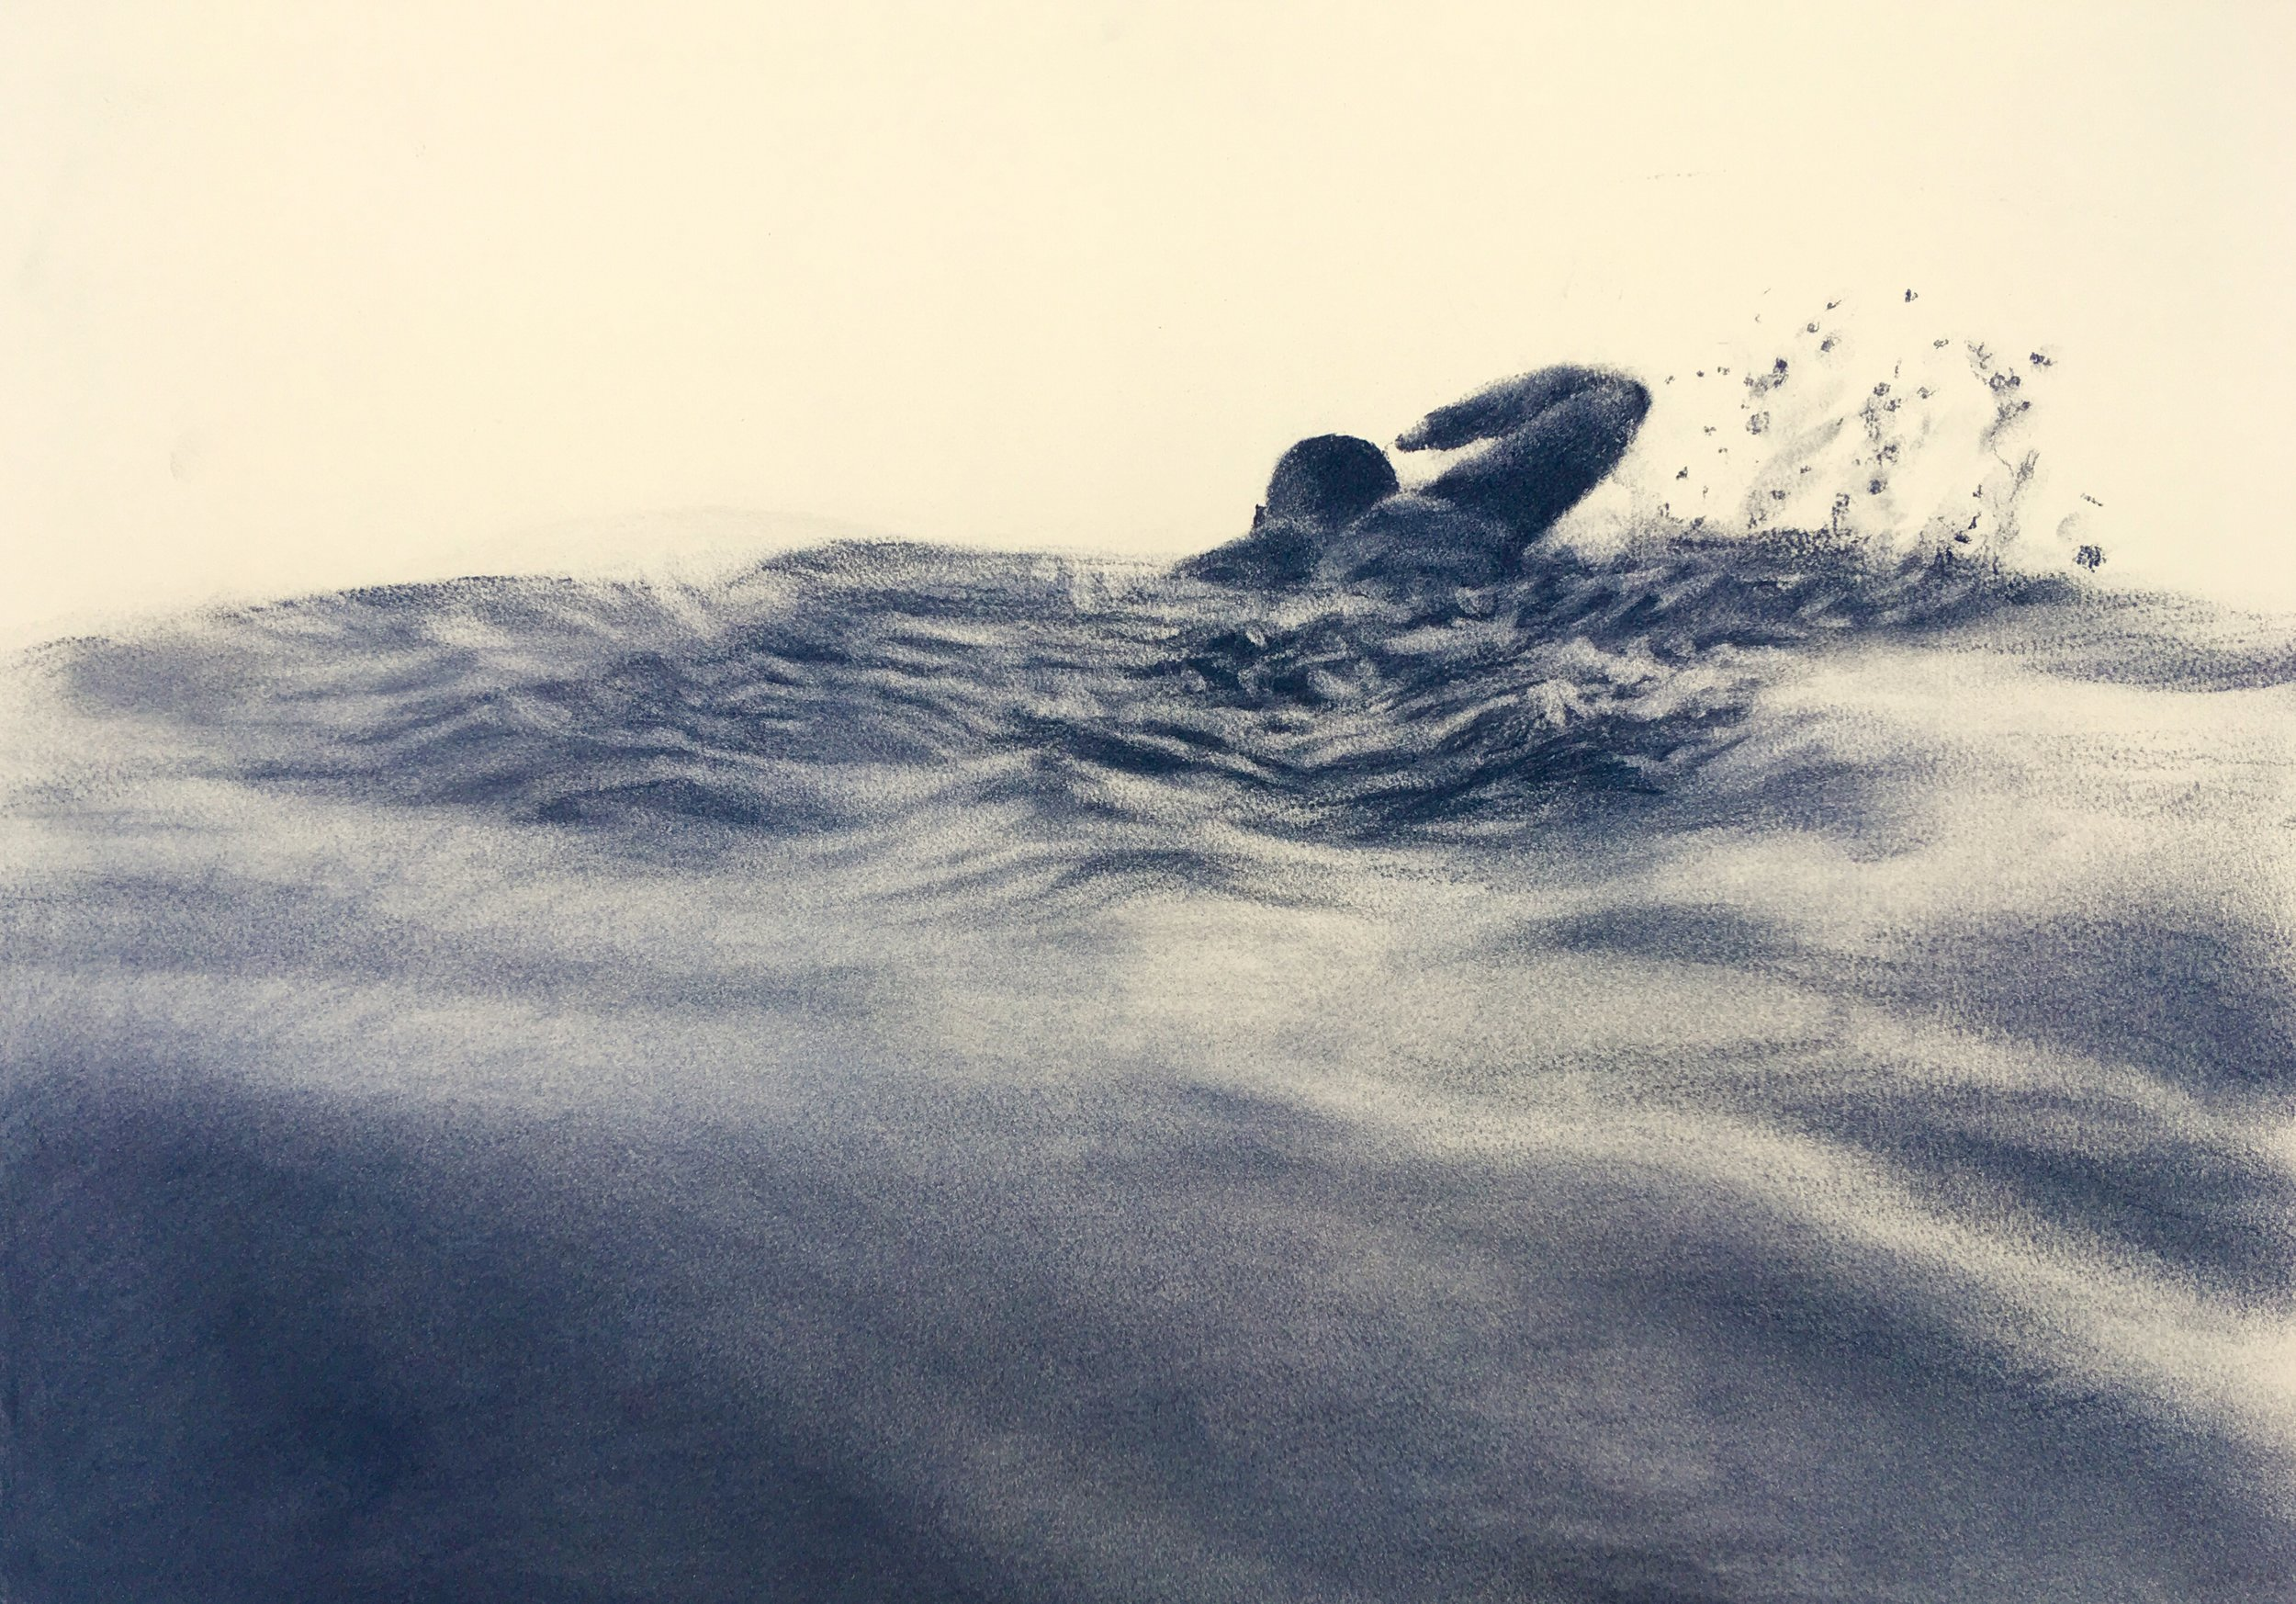 Artist: Patsy McArthur  Title: Infinity Pool Study  Size: 110 x 110 cm  Medium: Charcoal on paper  Price: £3500   Buy Now